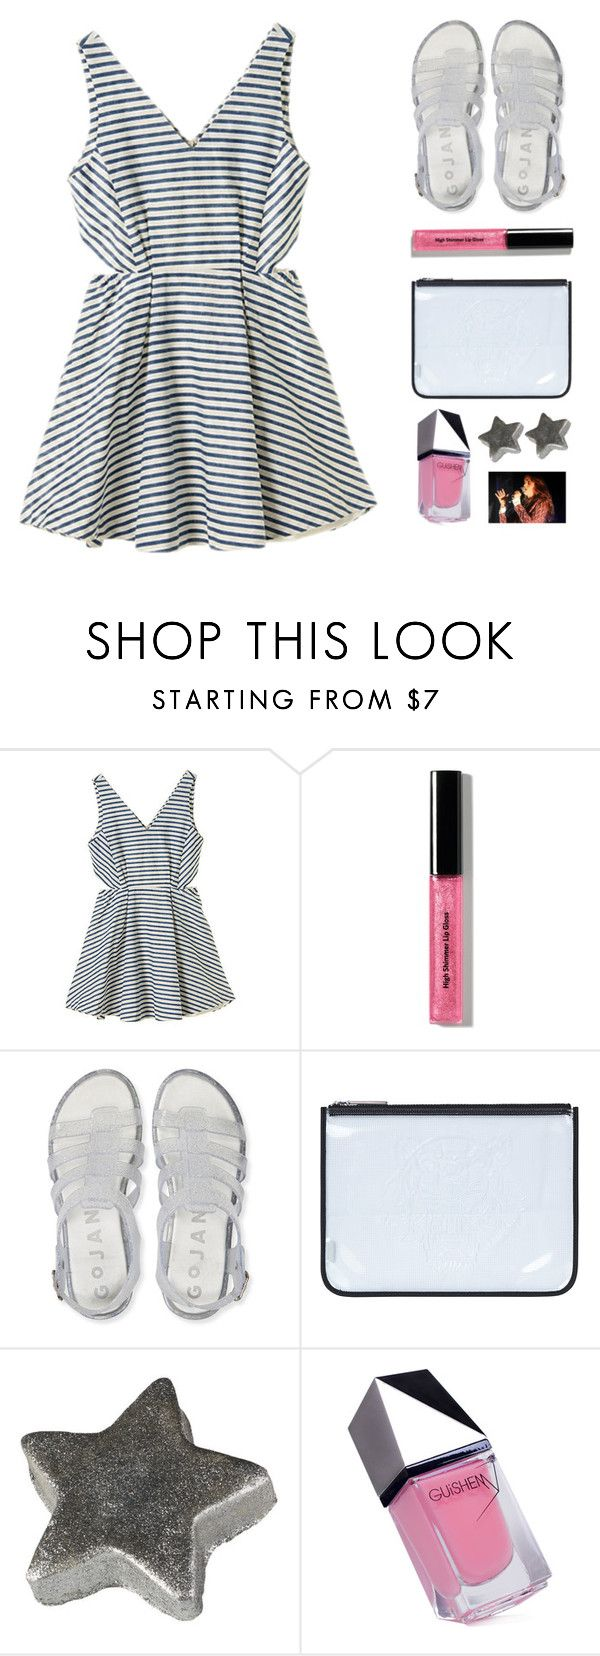 """#vias60kchallenge - 4"" by amazing-abby ❤ liked on Polyvore featuring Bobbi Brown Cosmetics, Aéropostale, Kenzo and GUiSHEM"